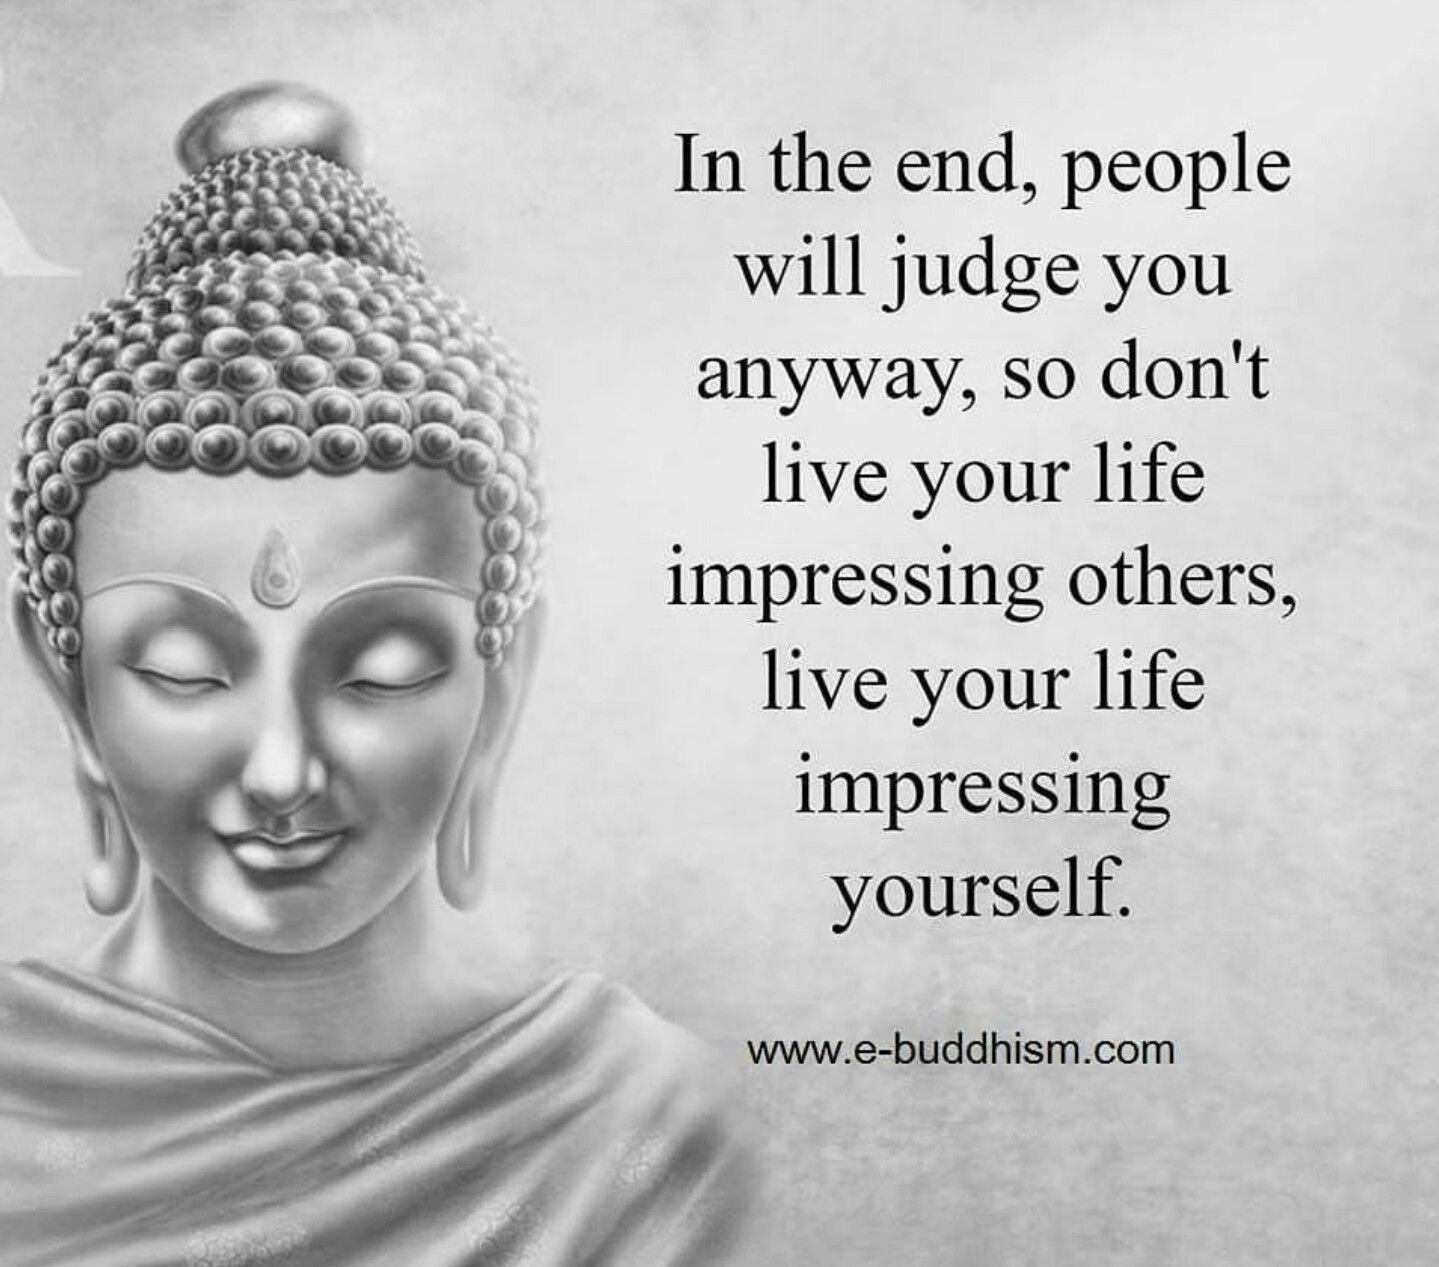 Buddha Quotes On Life: Pin By Vandana B On Quotes I Like